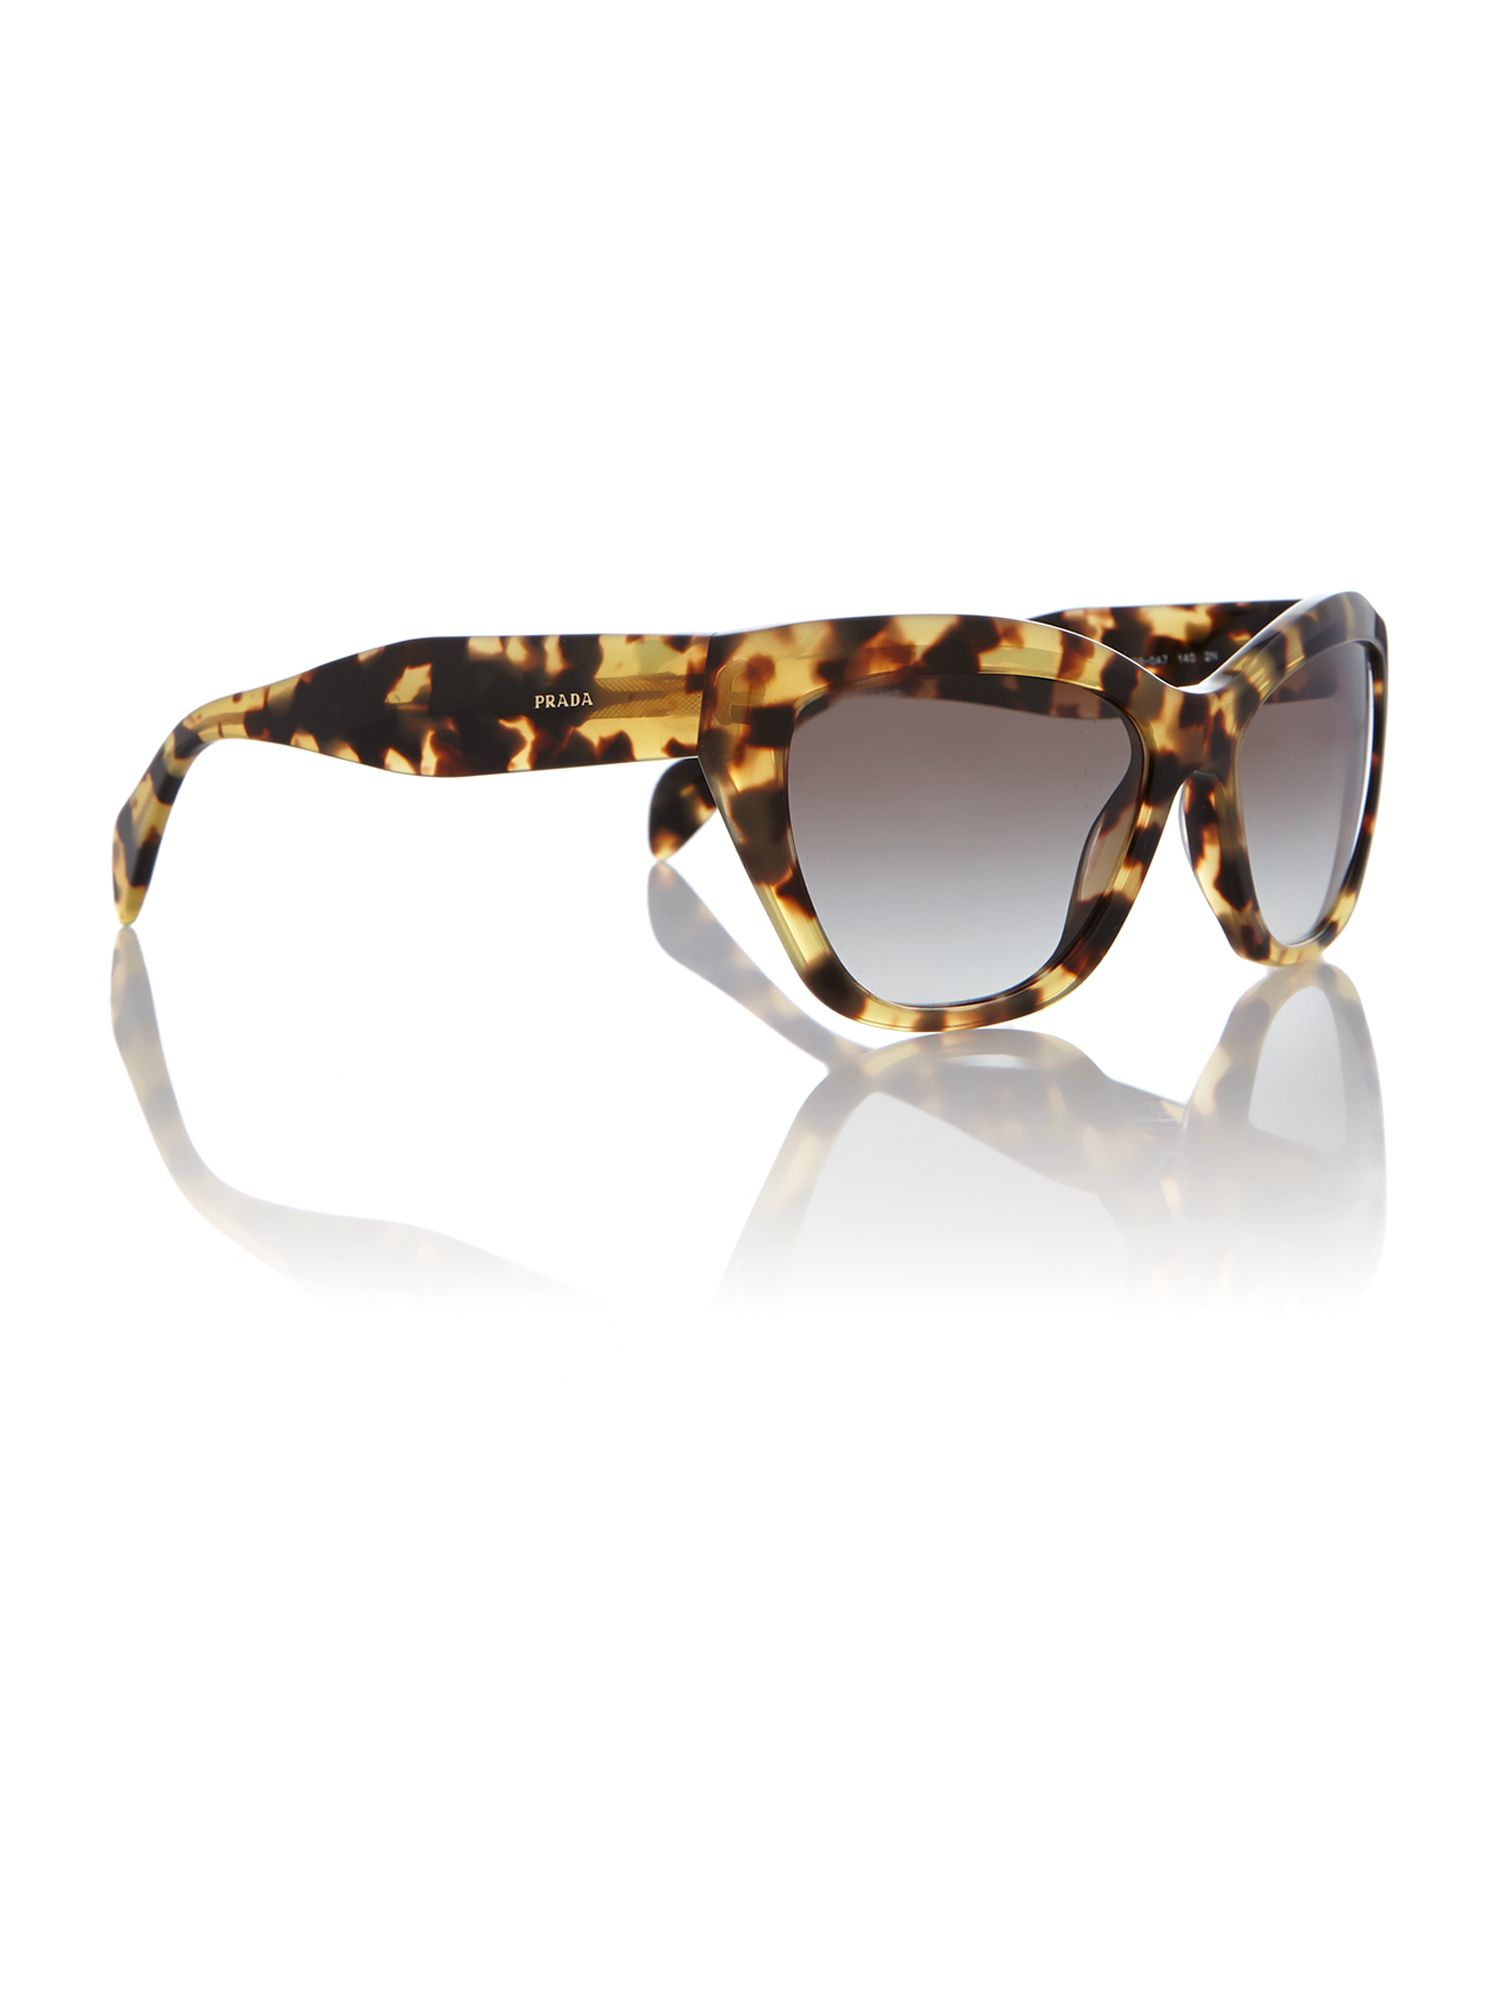 Pr 02qs ladies cat eye sunglasses